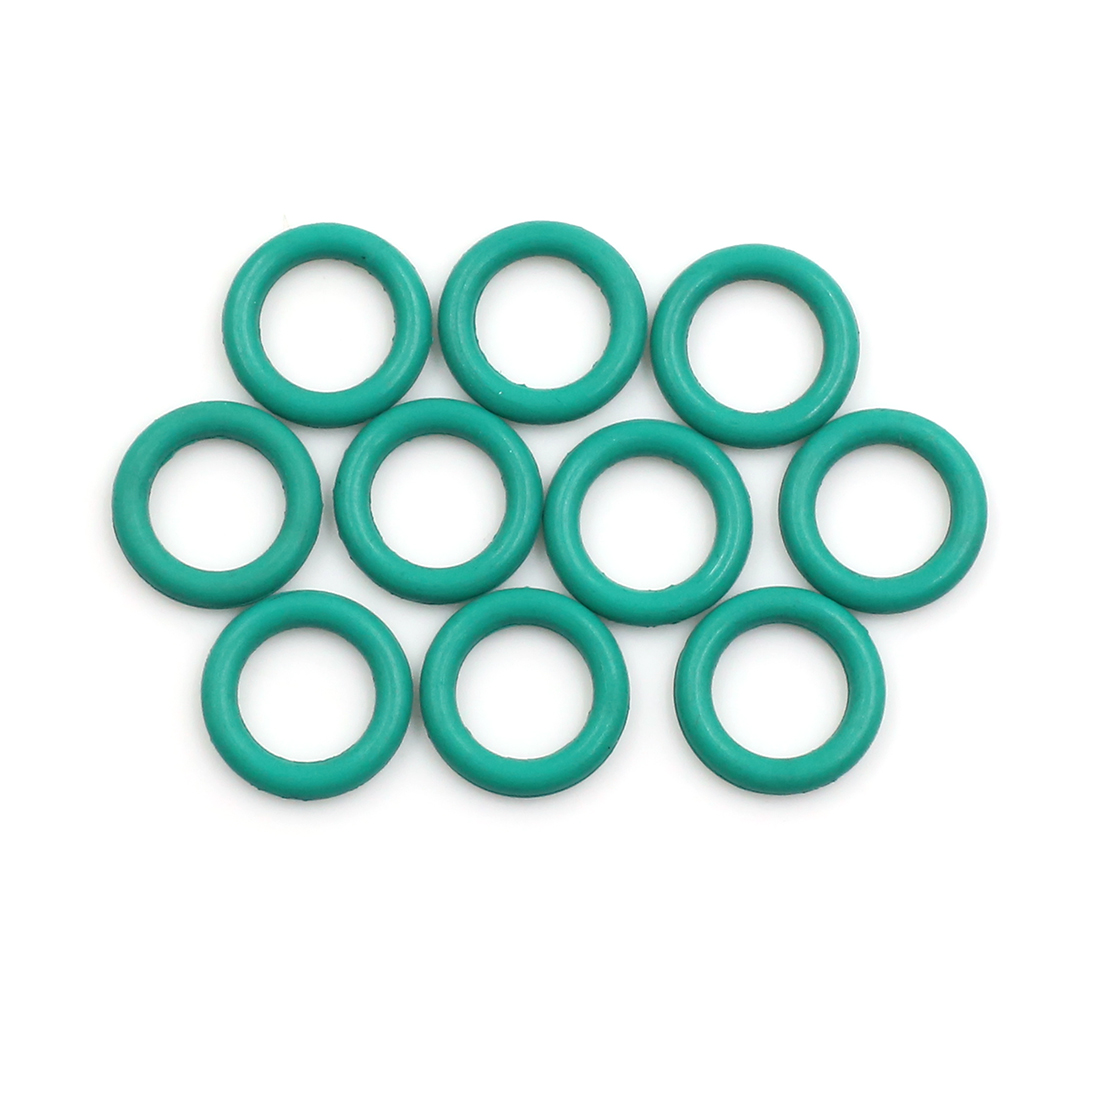 10pcs Green Fluorine Rubber O-Ring Seal Gasket Washer for Car 14 x 2.5mm